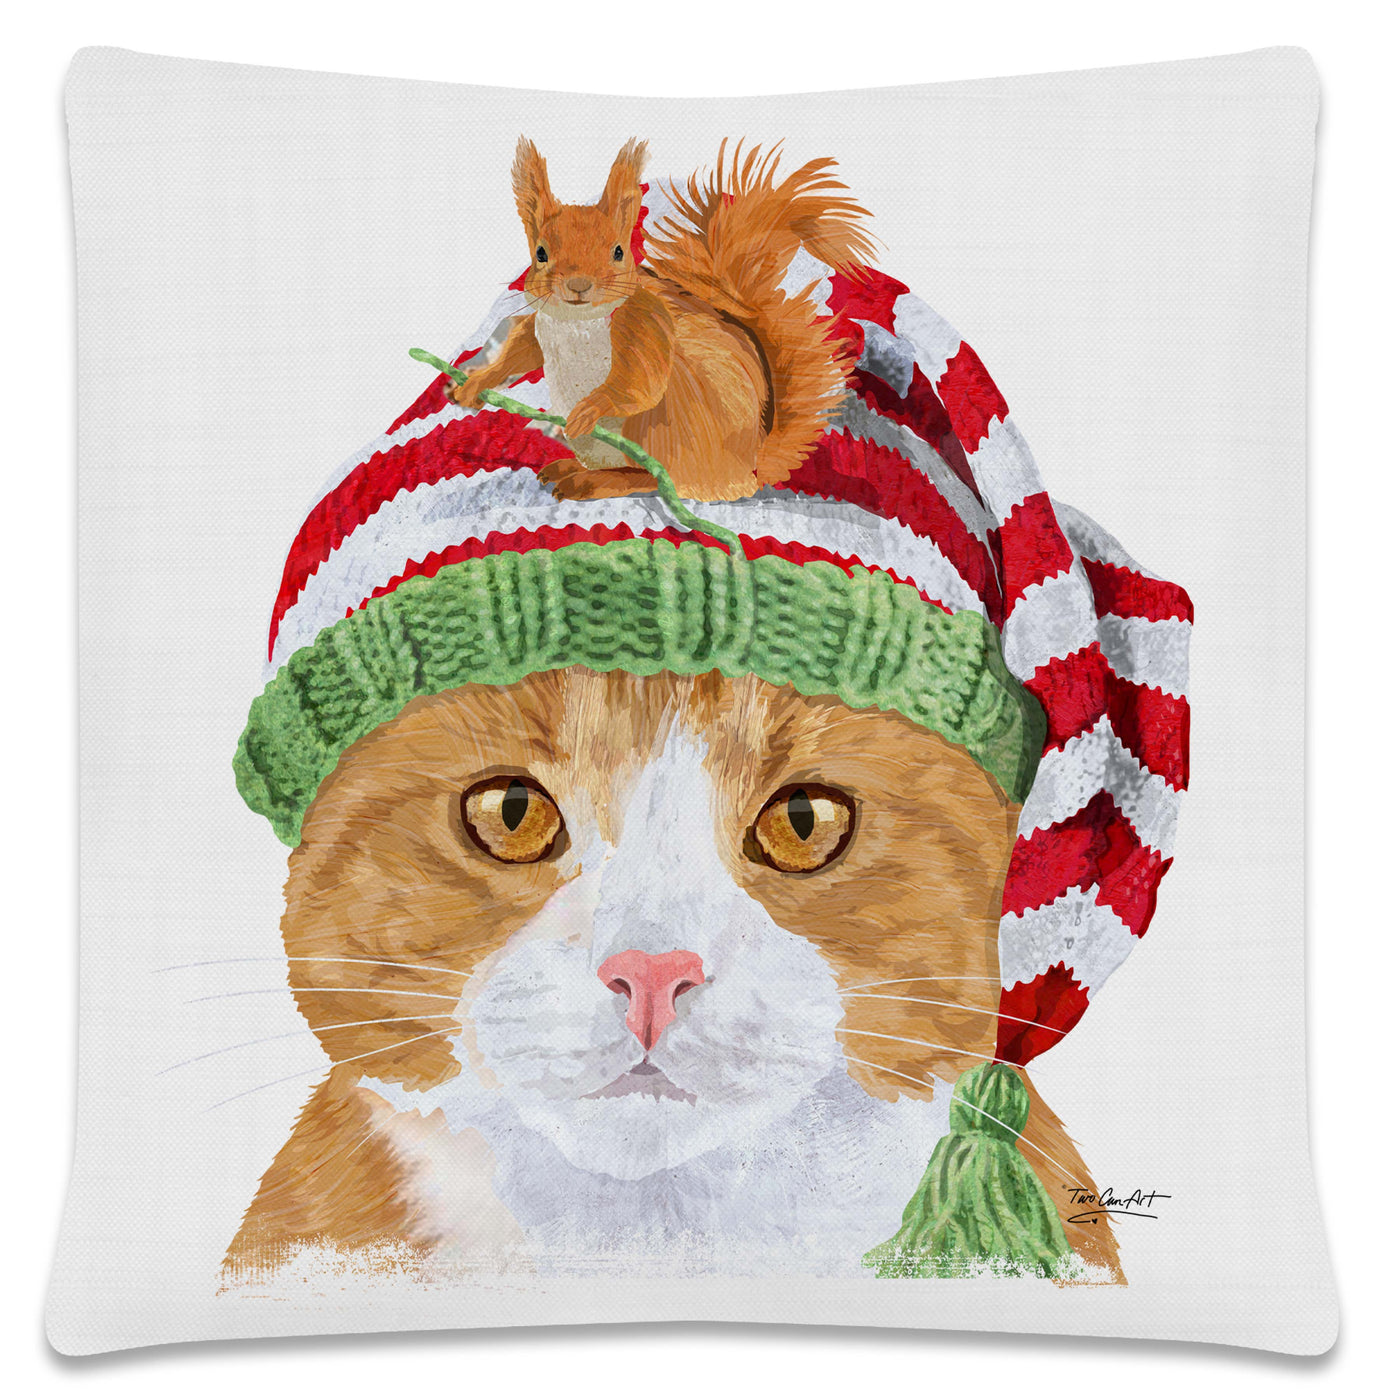 Throw Pillow-18x18-Seasonal-Winter-Heritage Lace-Cool Cats-Shorthair